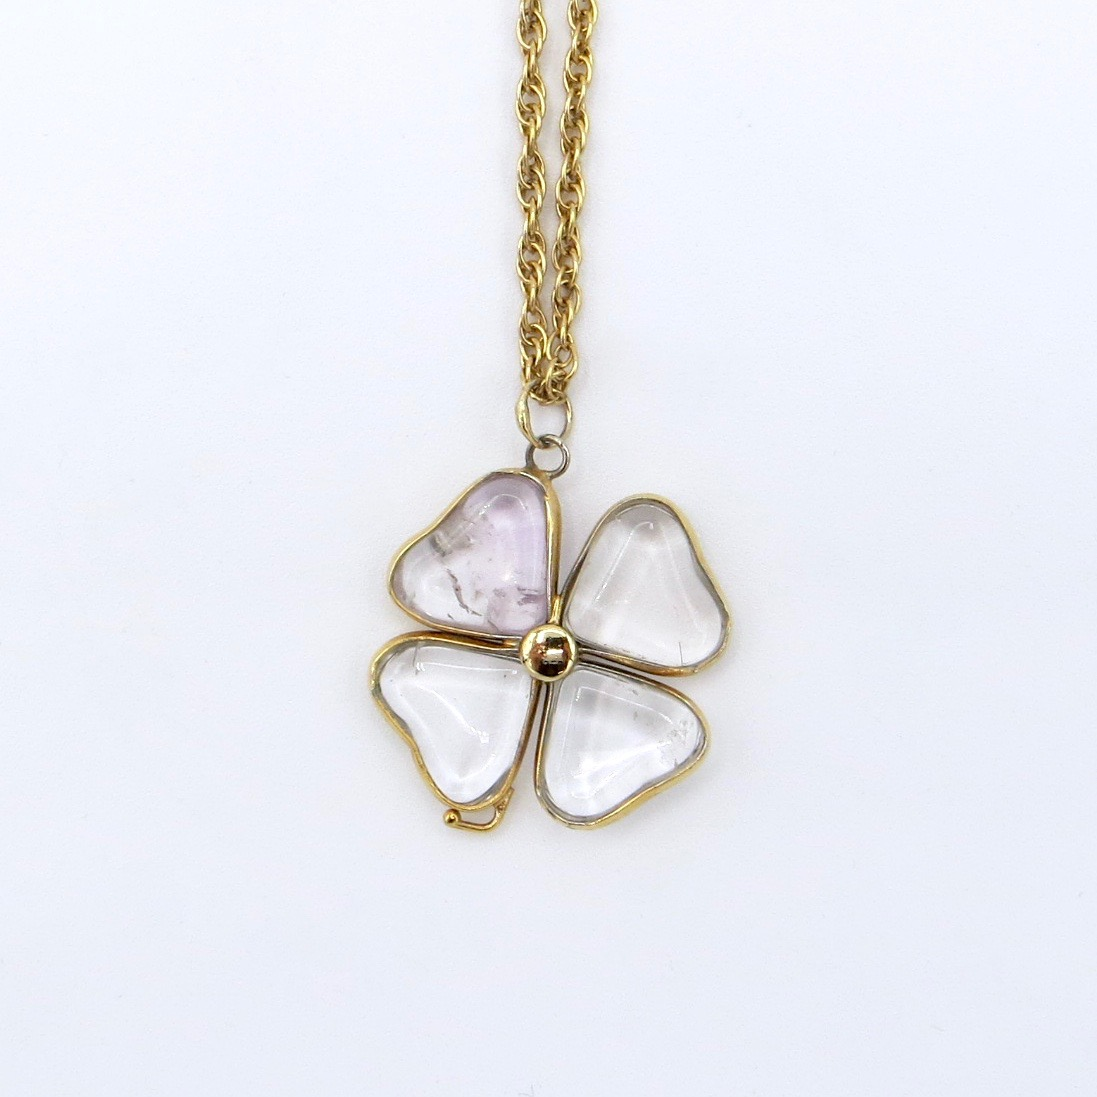 Quartz Clover Necklace